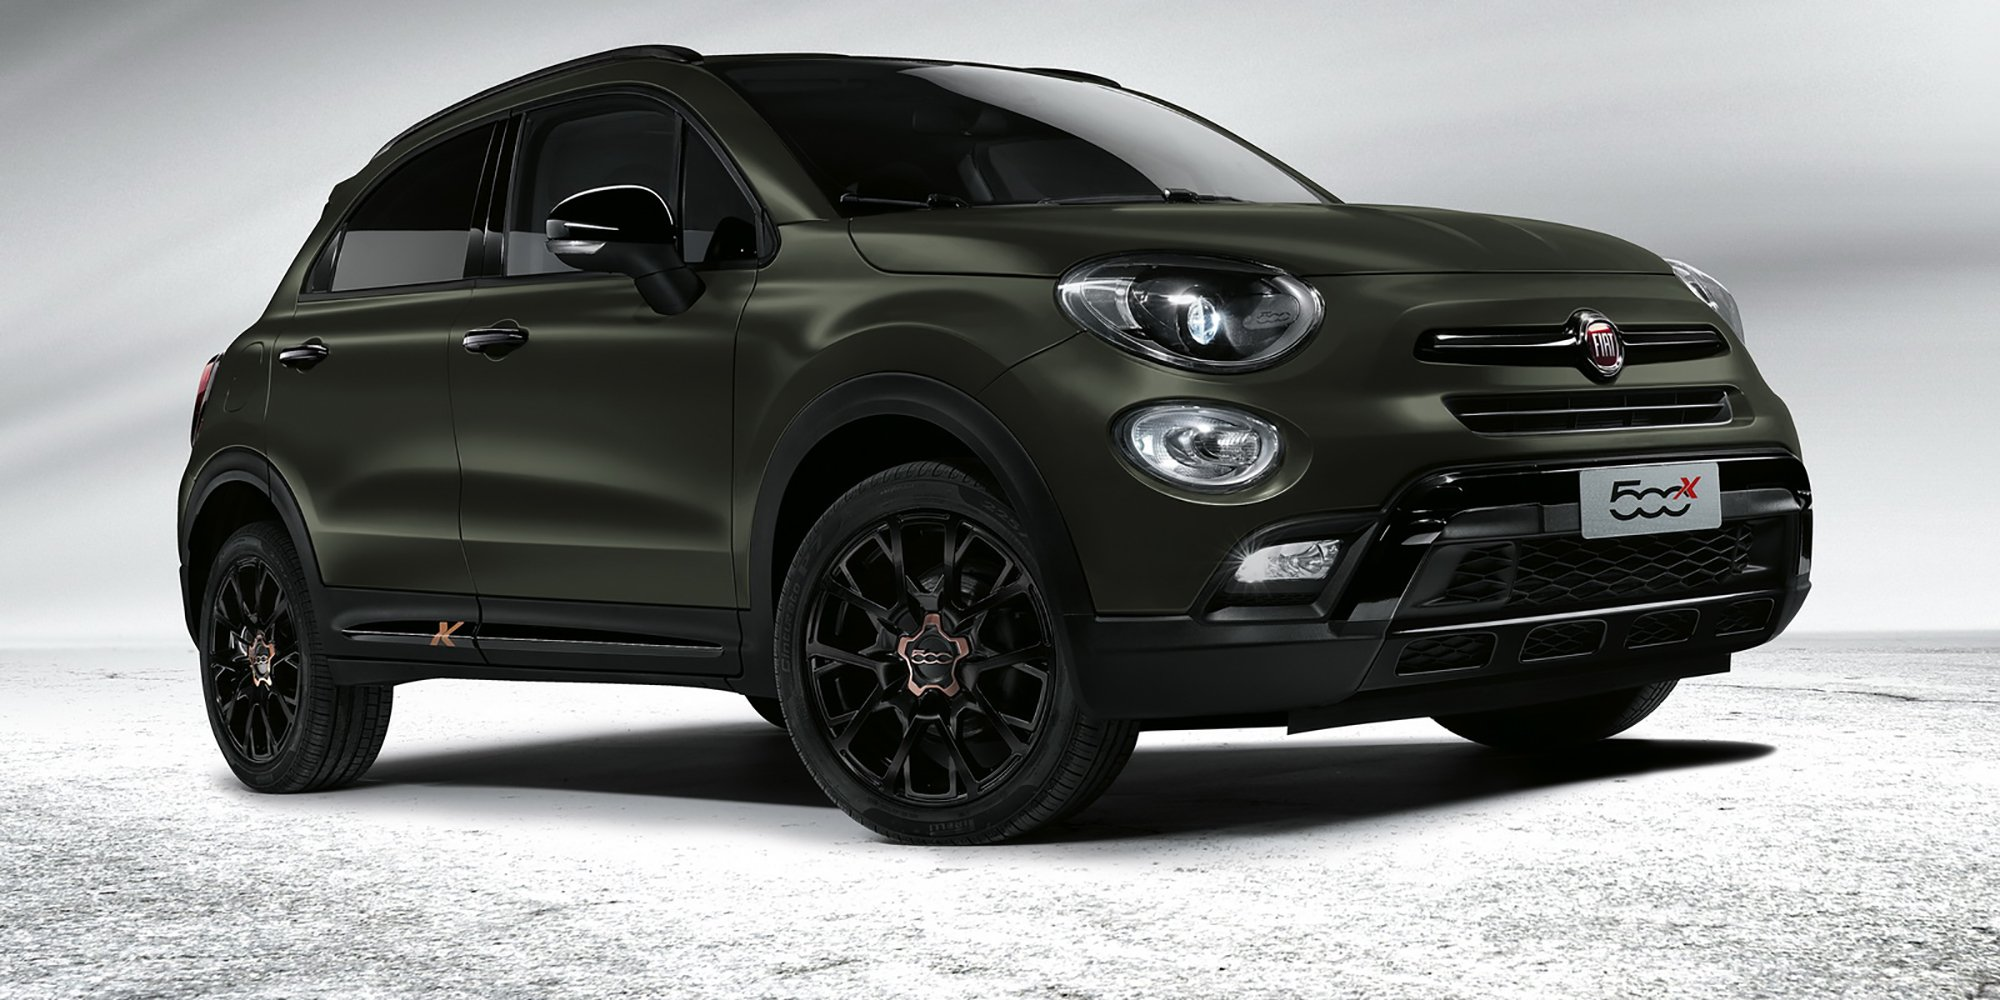 2017 Ford Ranger >> 2018 Fiat 500X update revealed, in Australia from first quarter - Photos (1 of 8)